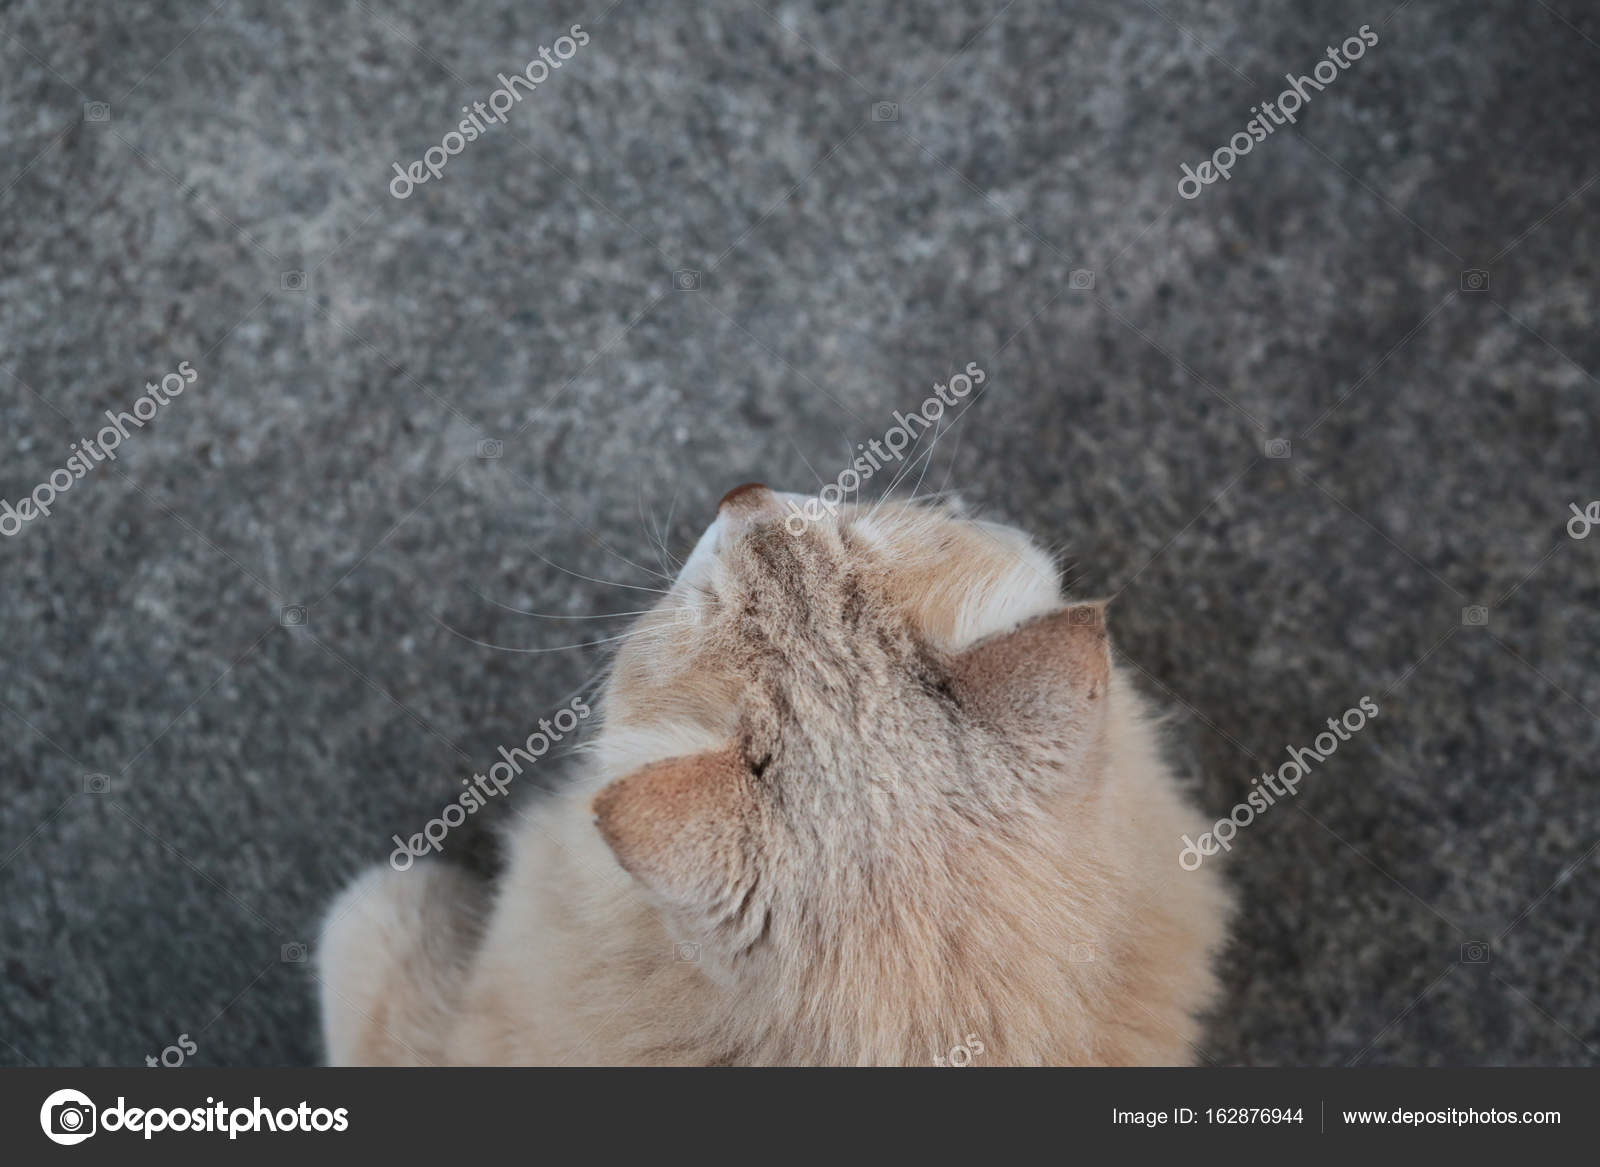 Brown Hair Cat On Cement Floor Photo With Top View By Yphotoland